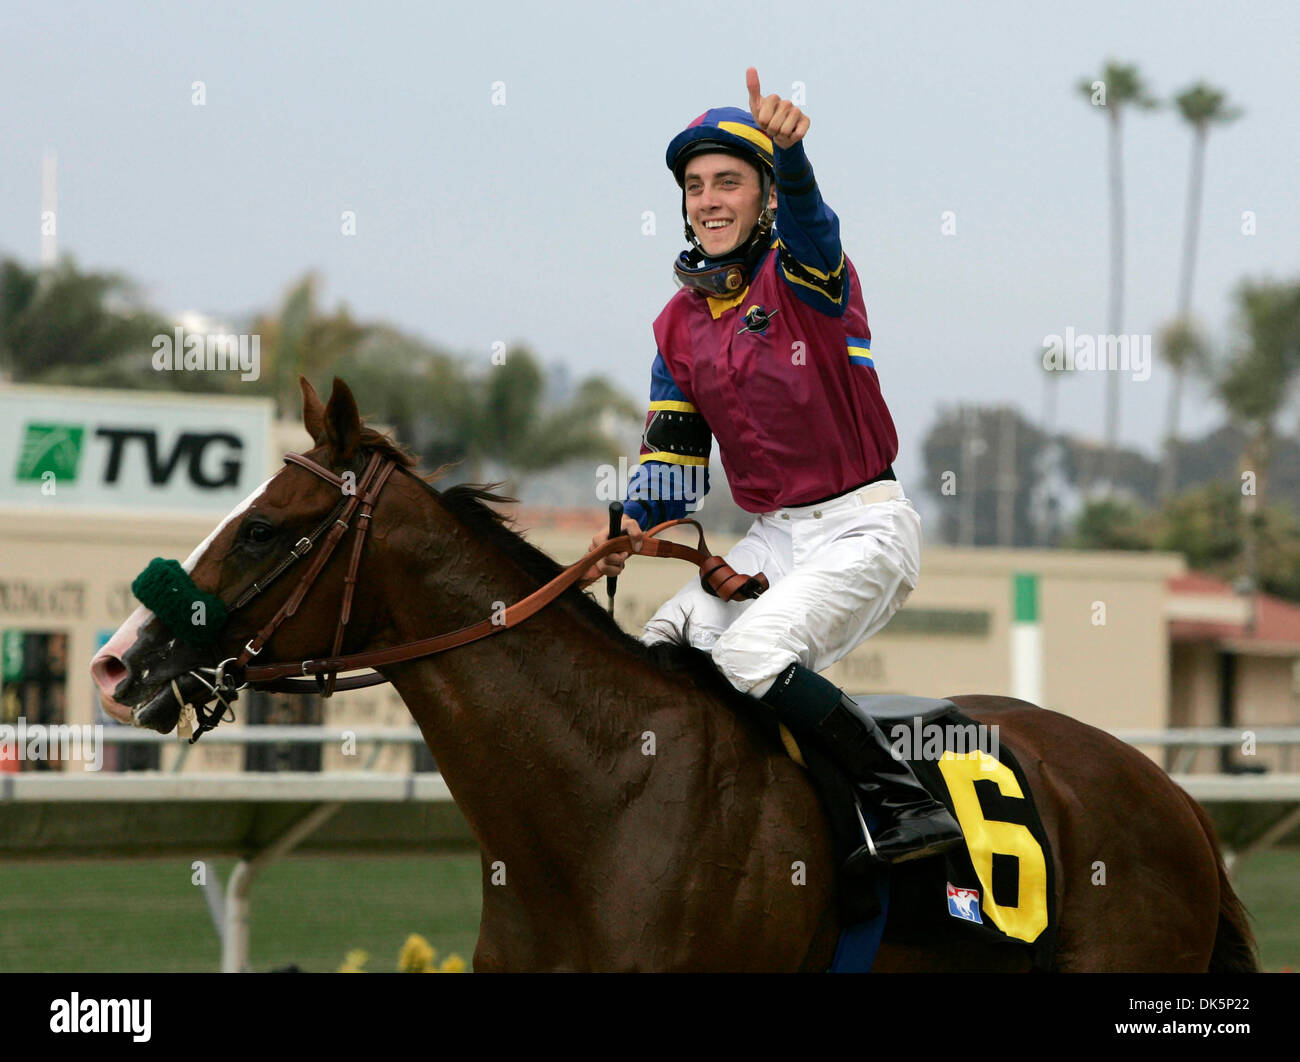 May 12, 2011 - Louisville, Kentucky, USA - FILE - MICHAEL BAZE (April 14, 1987 - May 10, 2011) was an American Thoroughbred Stock Photo